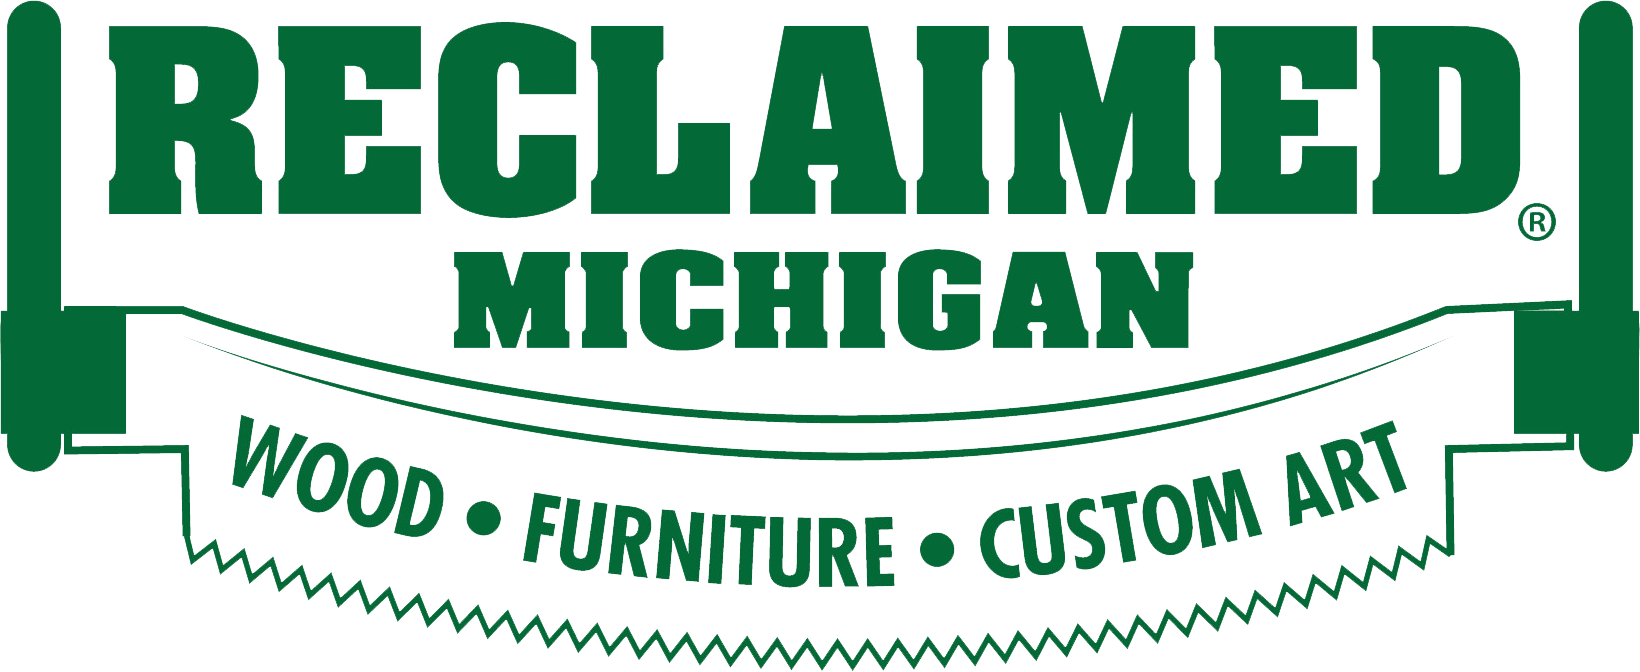 Reclaimed Michigan